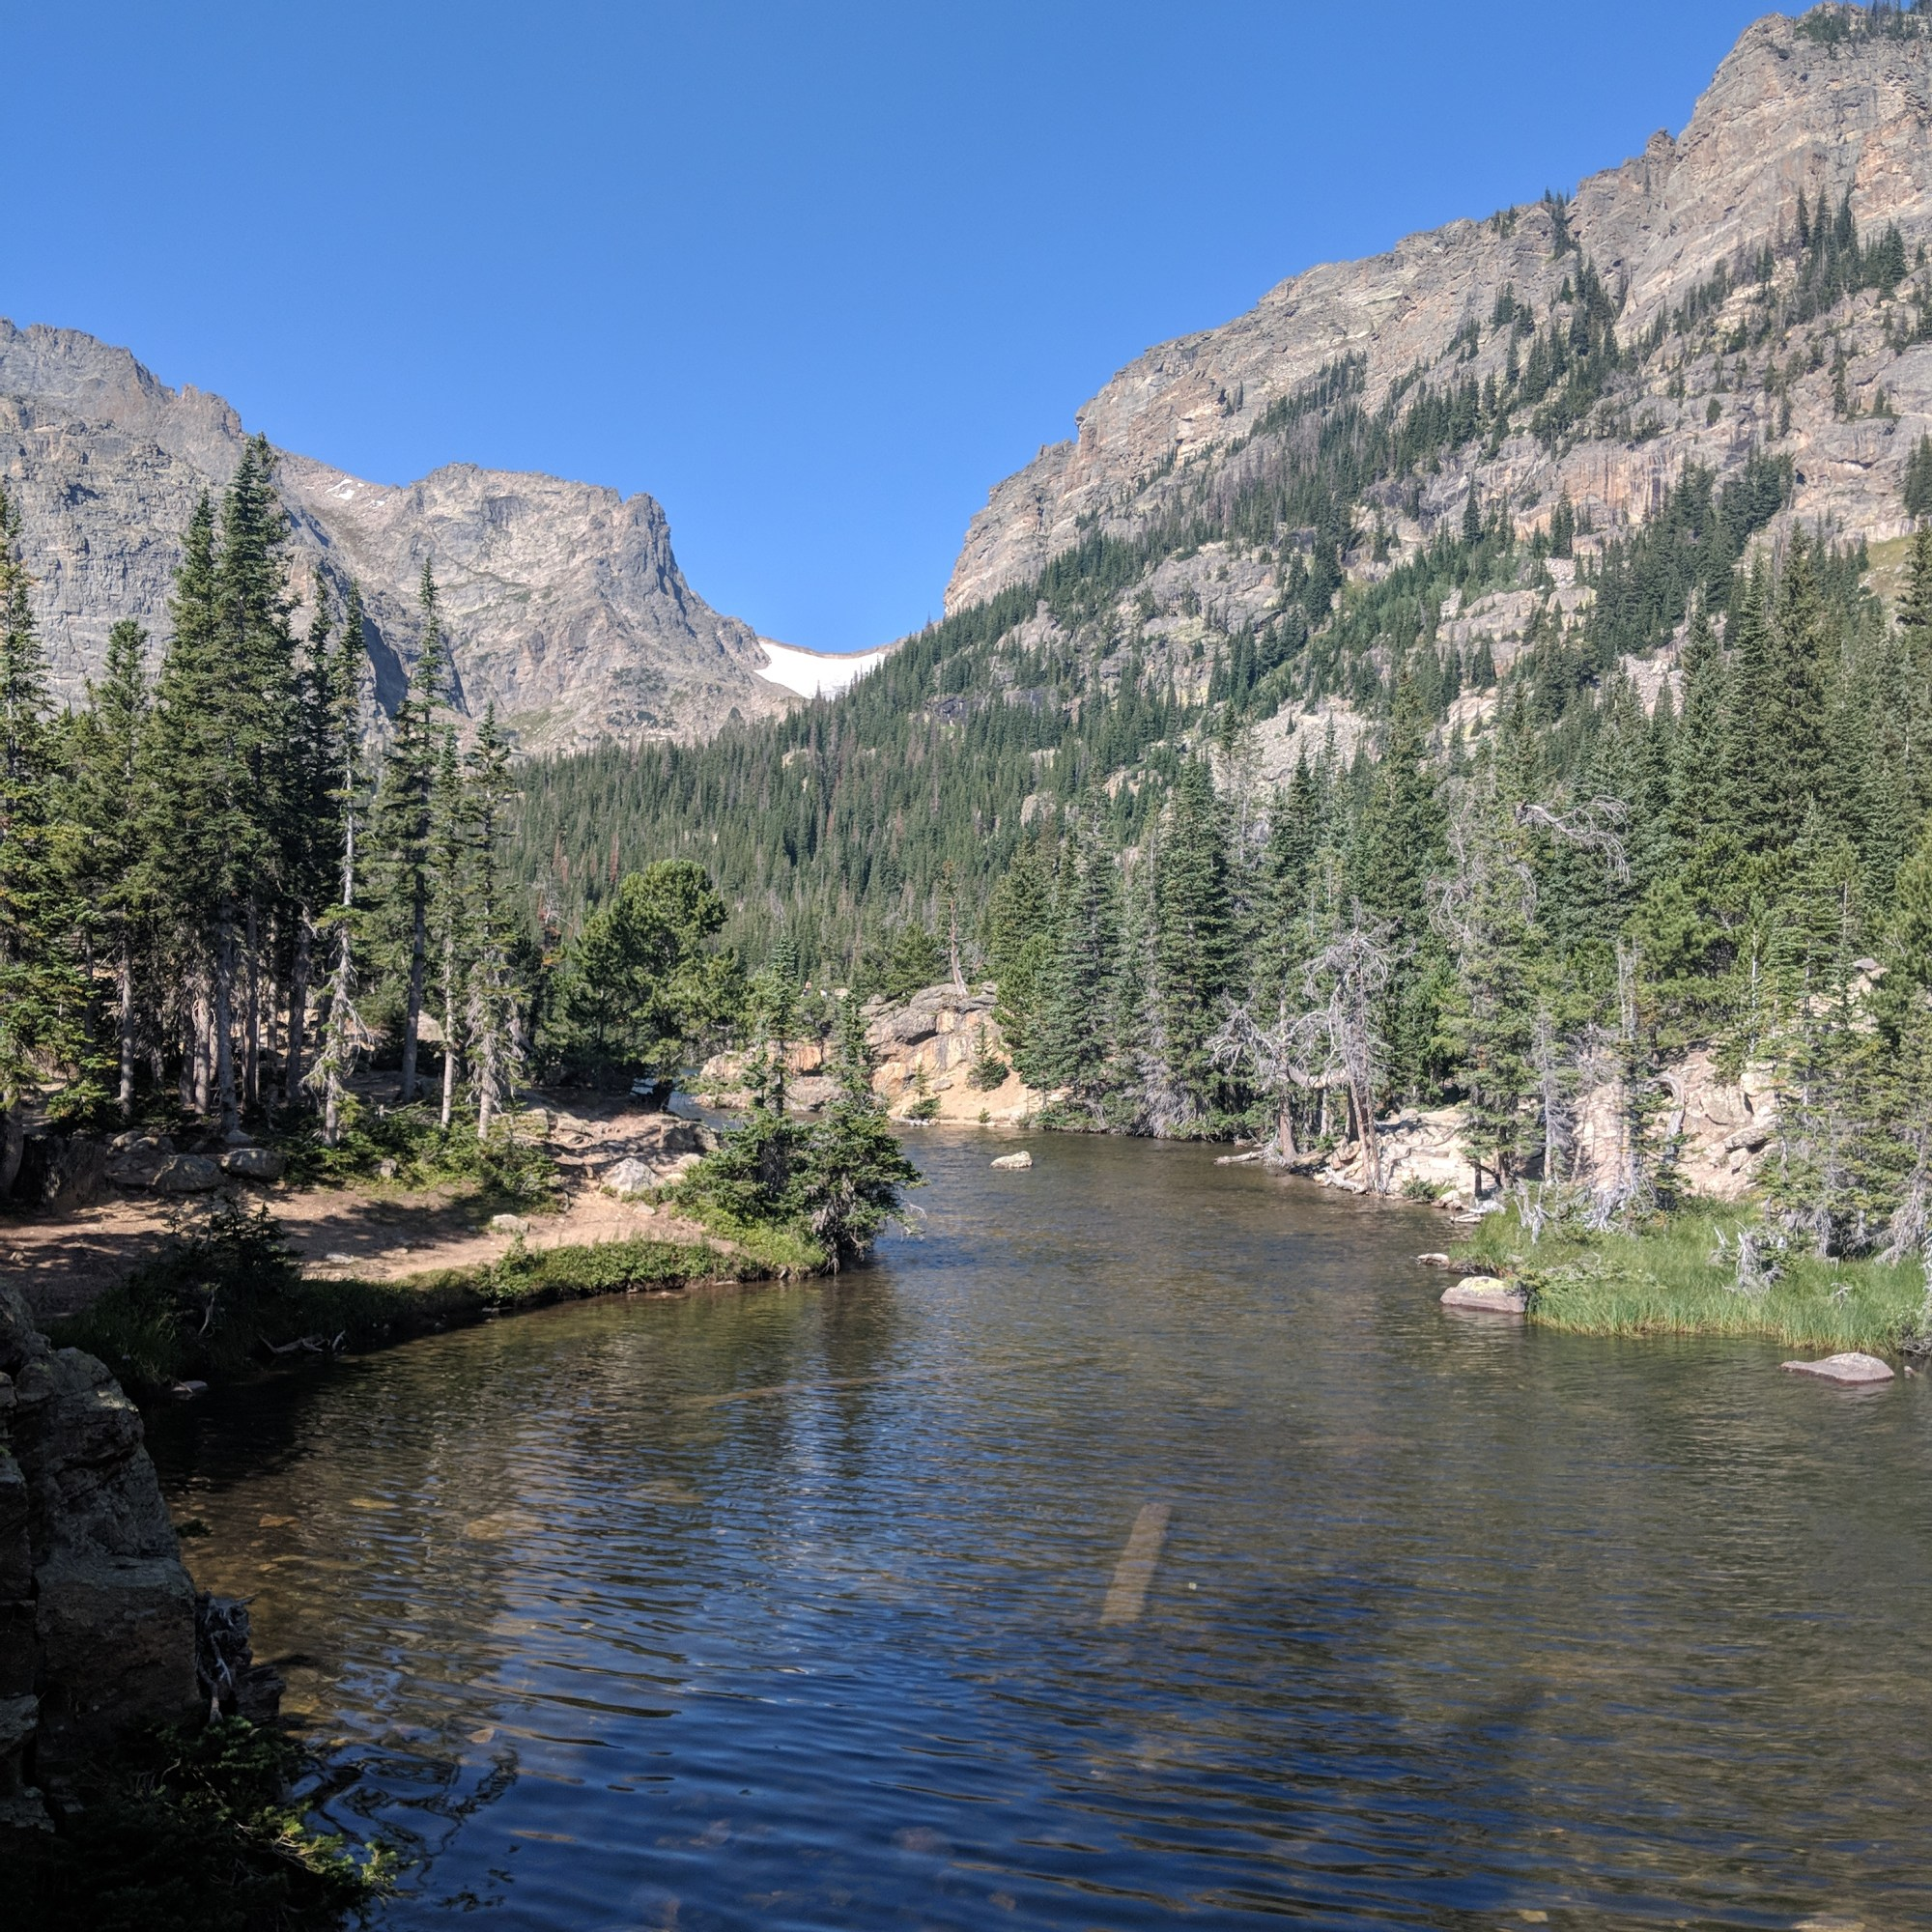 Mountain lake at Rocky MountainNational Park